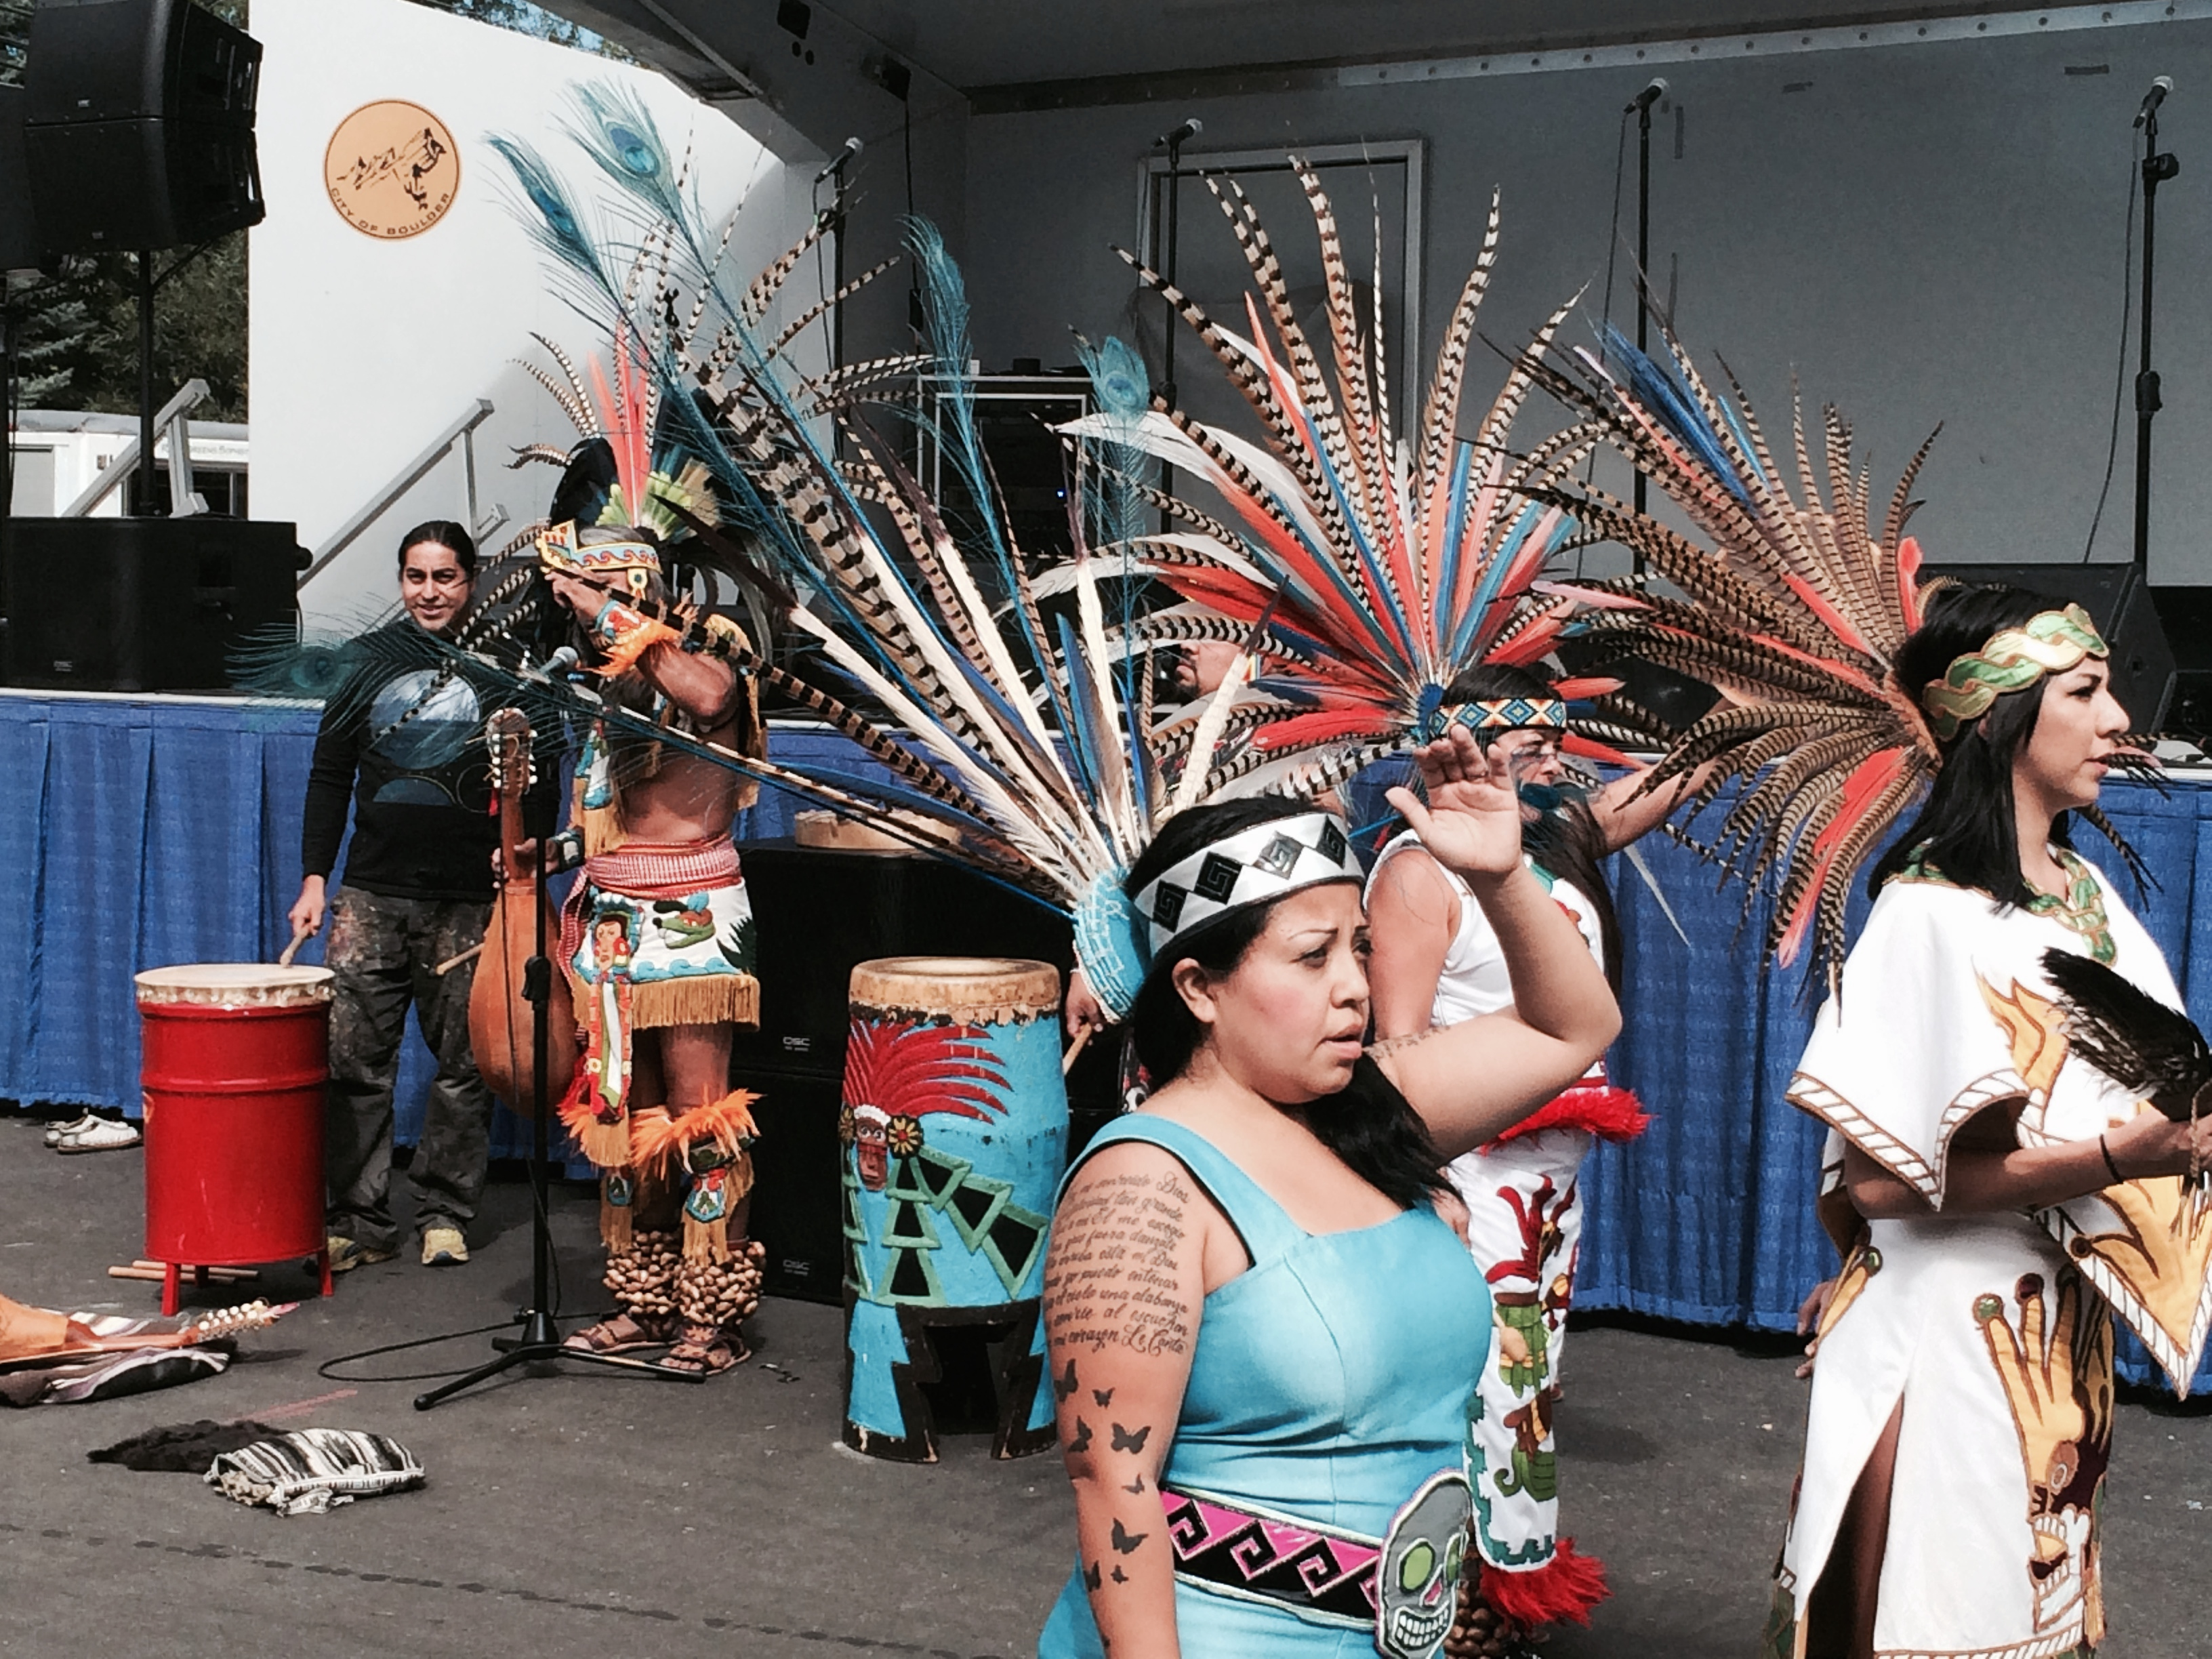 Dancers at an event held at the 2014 Americas Latino Eco Festival